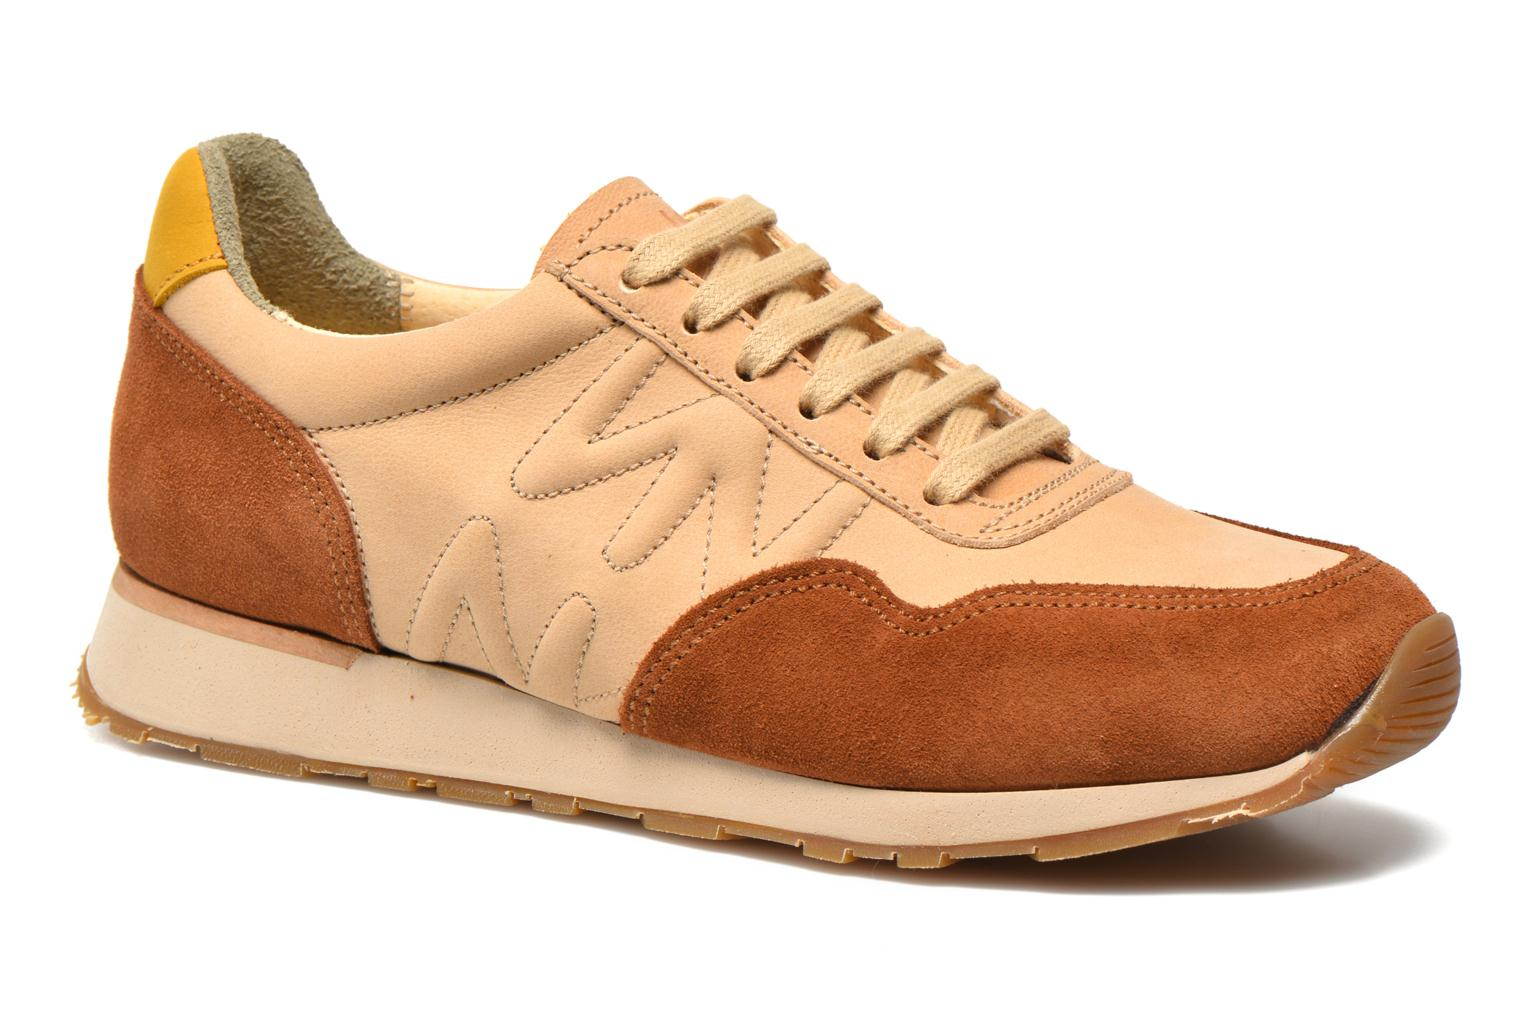 El Naturalista Walky ND90 Beige KNVcysD3